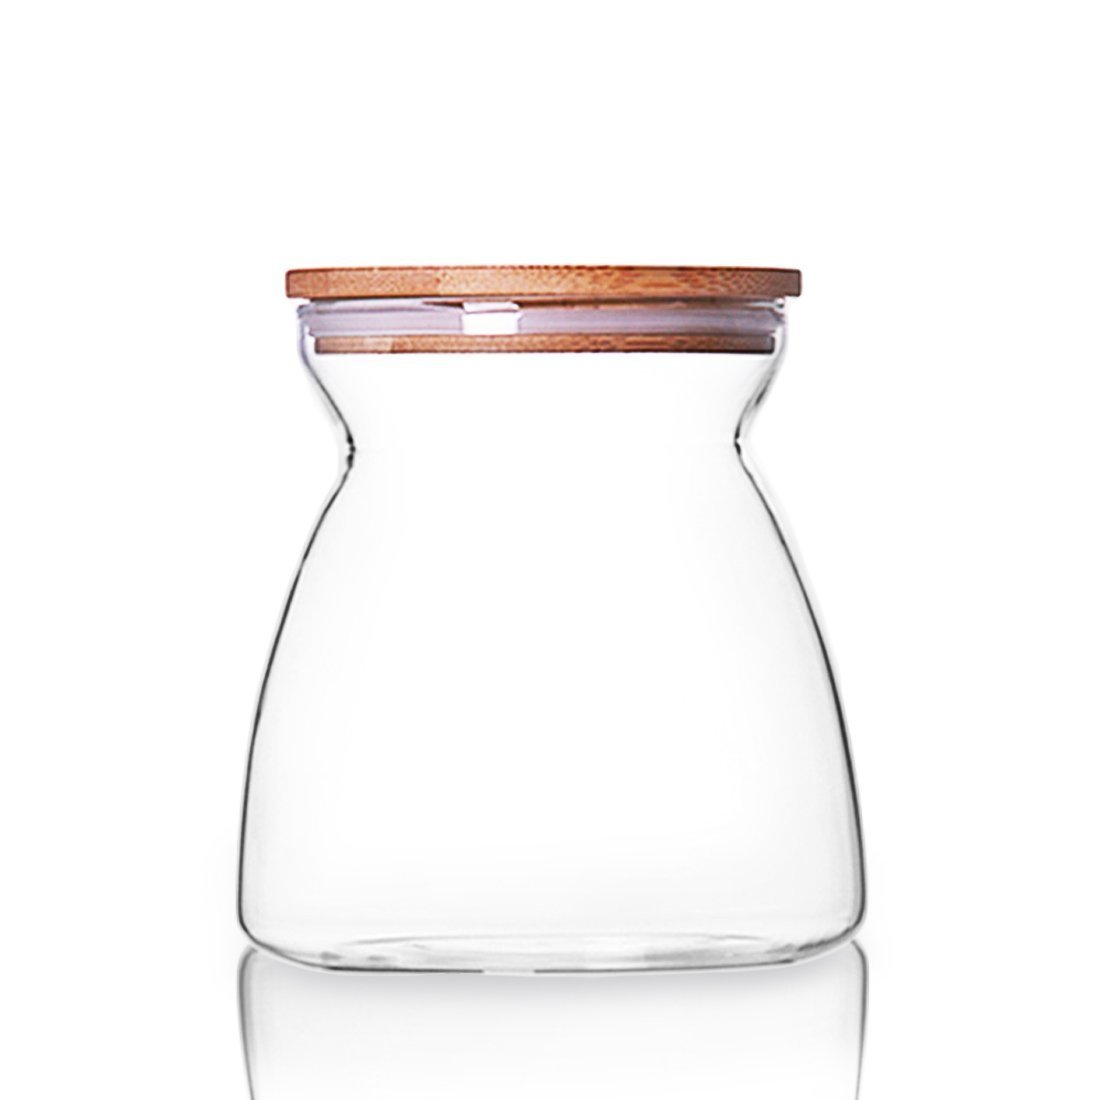 ONEISALL Glass Storage Jar with Wood Lid & Silicon Ring, Food Storage Container, Canisters 700ML for Pasta, Tea, Coffee, Cookies, Snacks